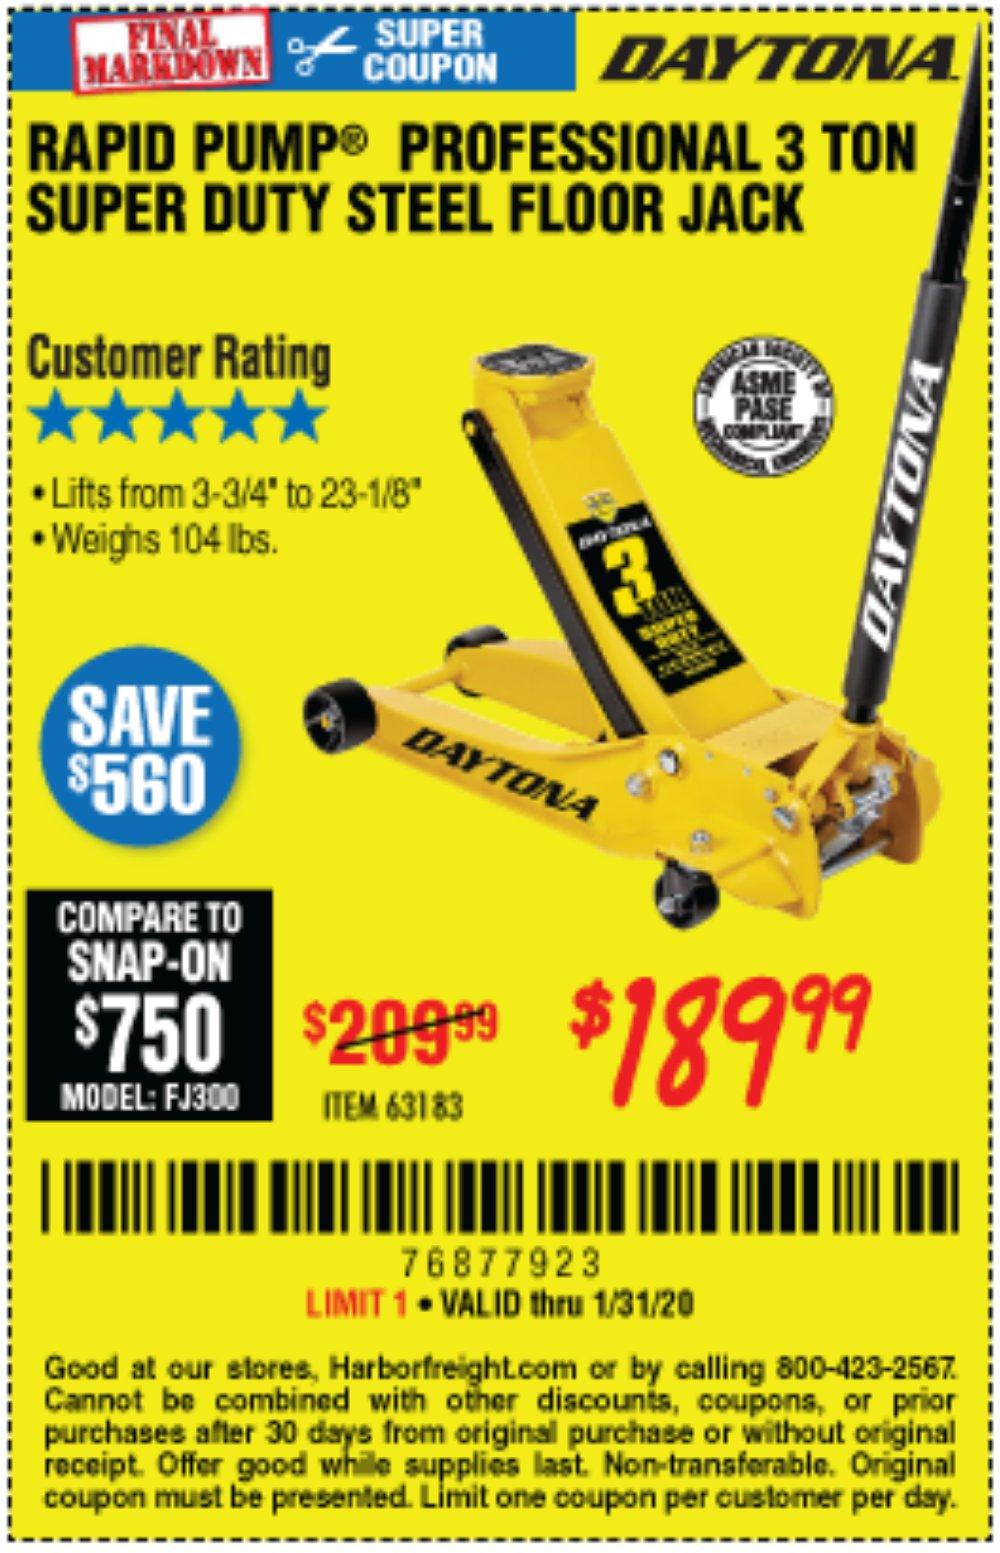 Harbor Freight Coupon, HF Coupons - 3 Ton Daytona Professional Steel Floor Jack - Super Duty